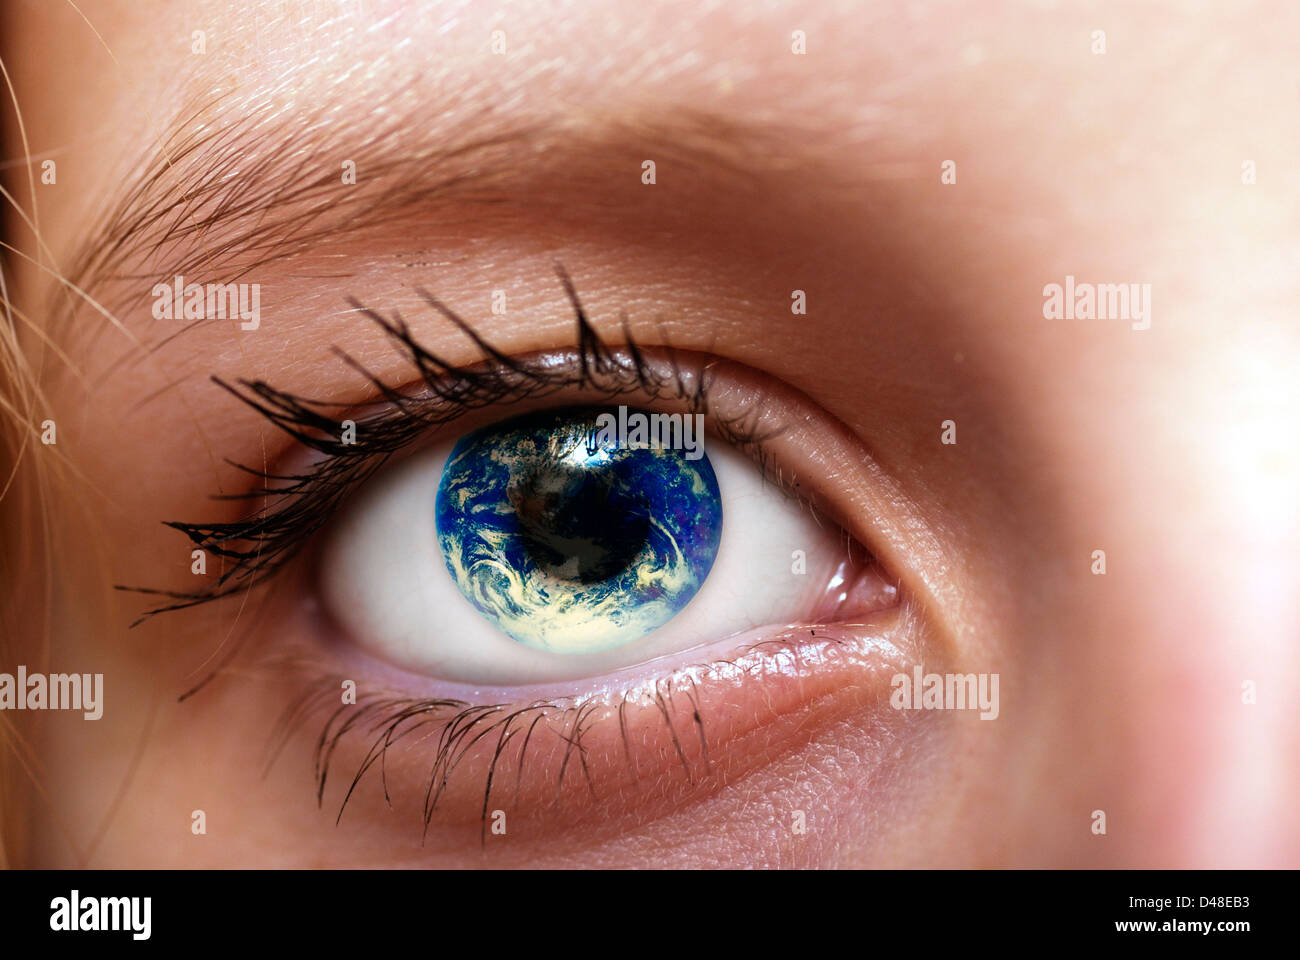 earth inside the eye of a girl. Sustainability, ecology awareness and environment preservation for future generations - Stock Image